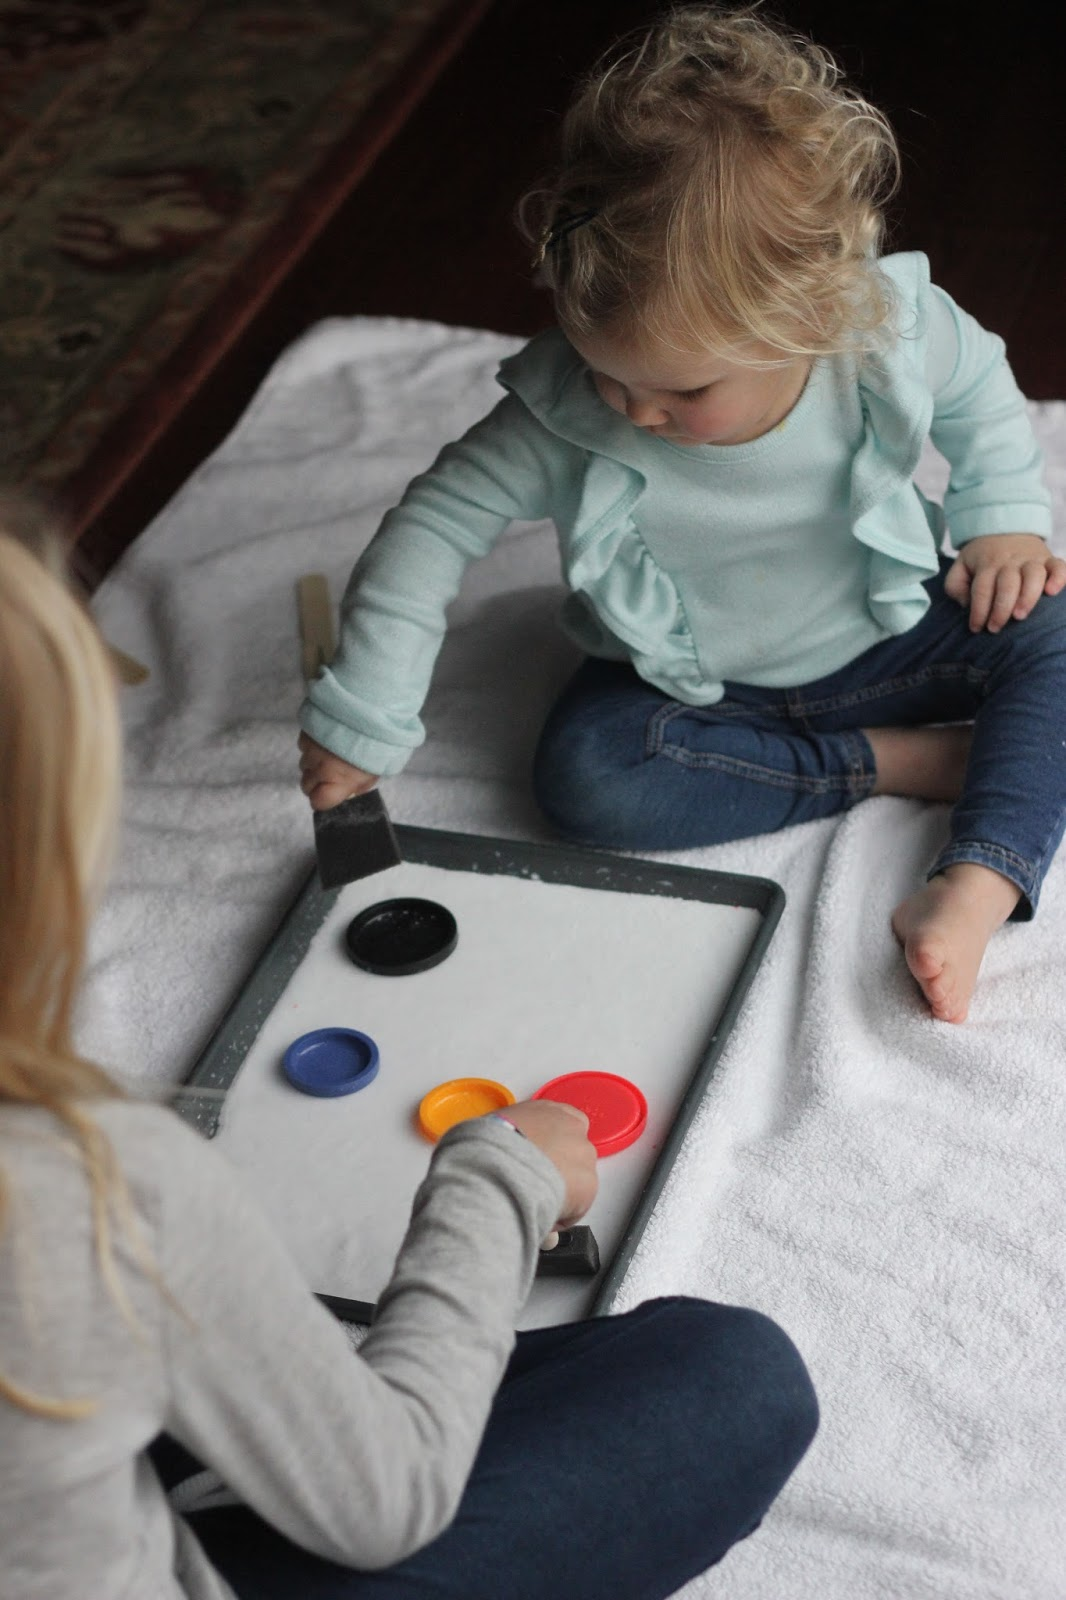 Toddler approved easy lid hockey game for toddlers this activity is a great way to play with lids grab your favorite lids and be ready for them to be flying all over solutioingenieria Image collections